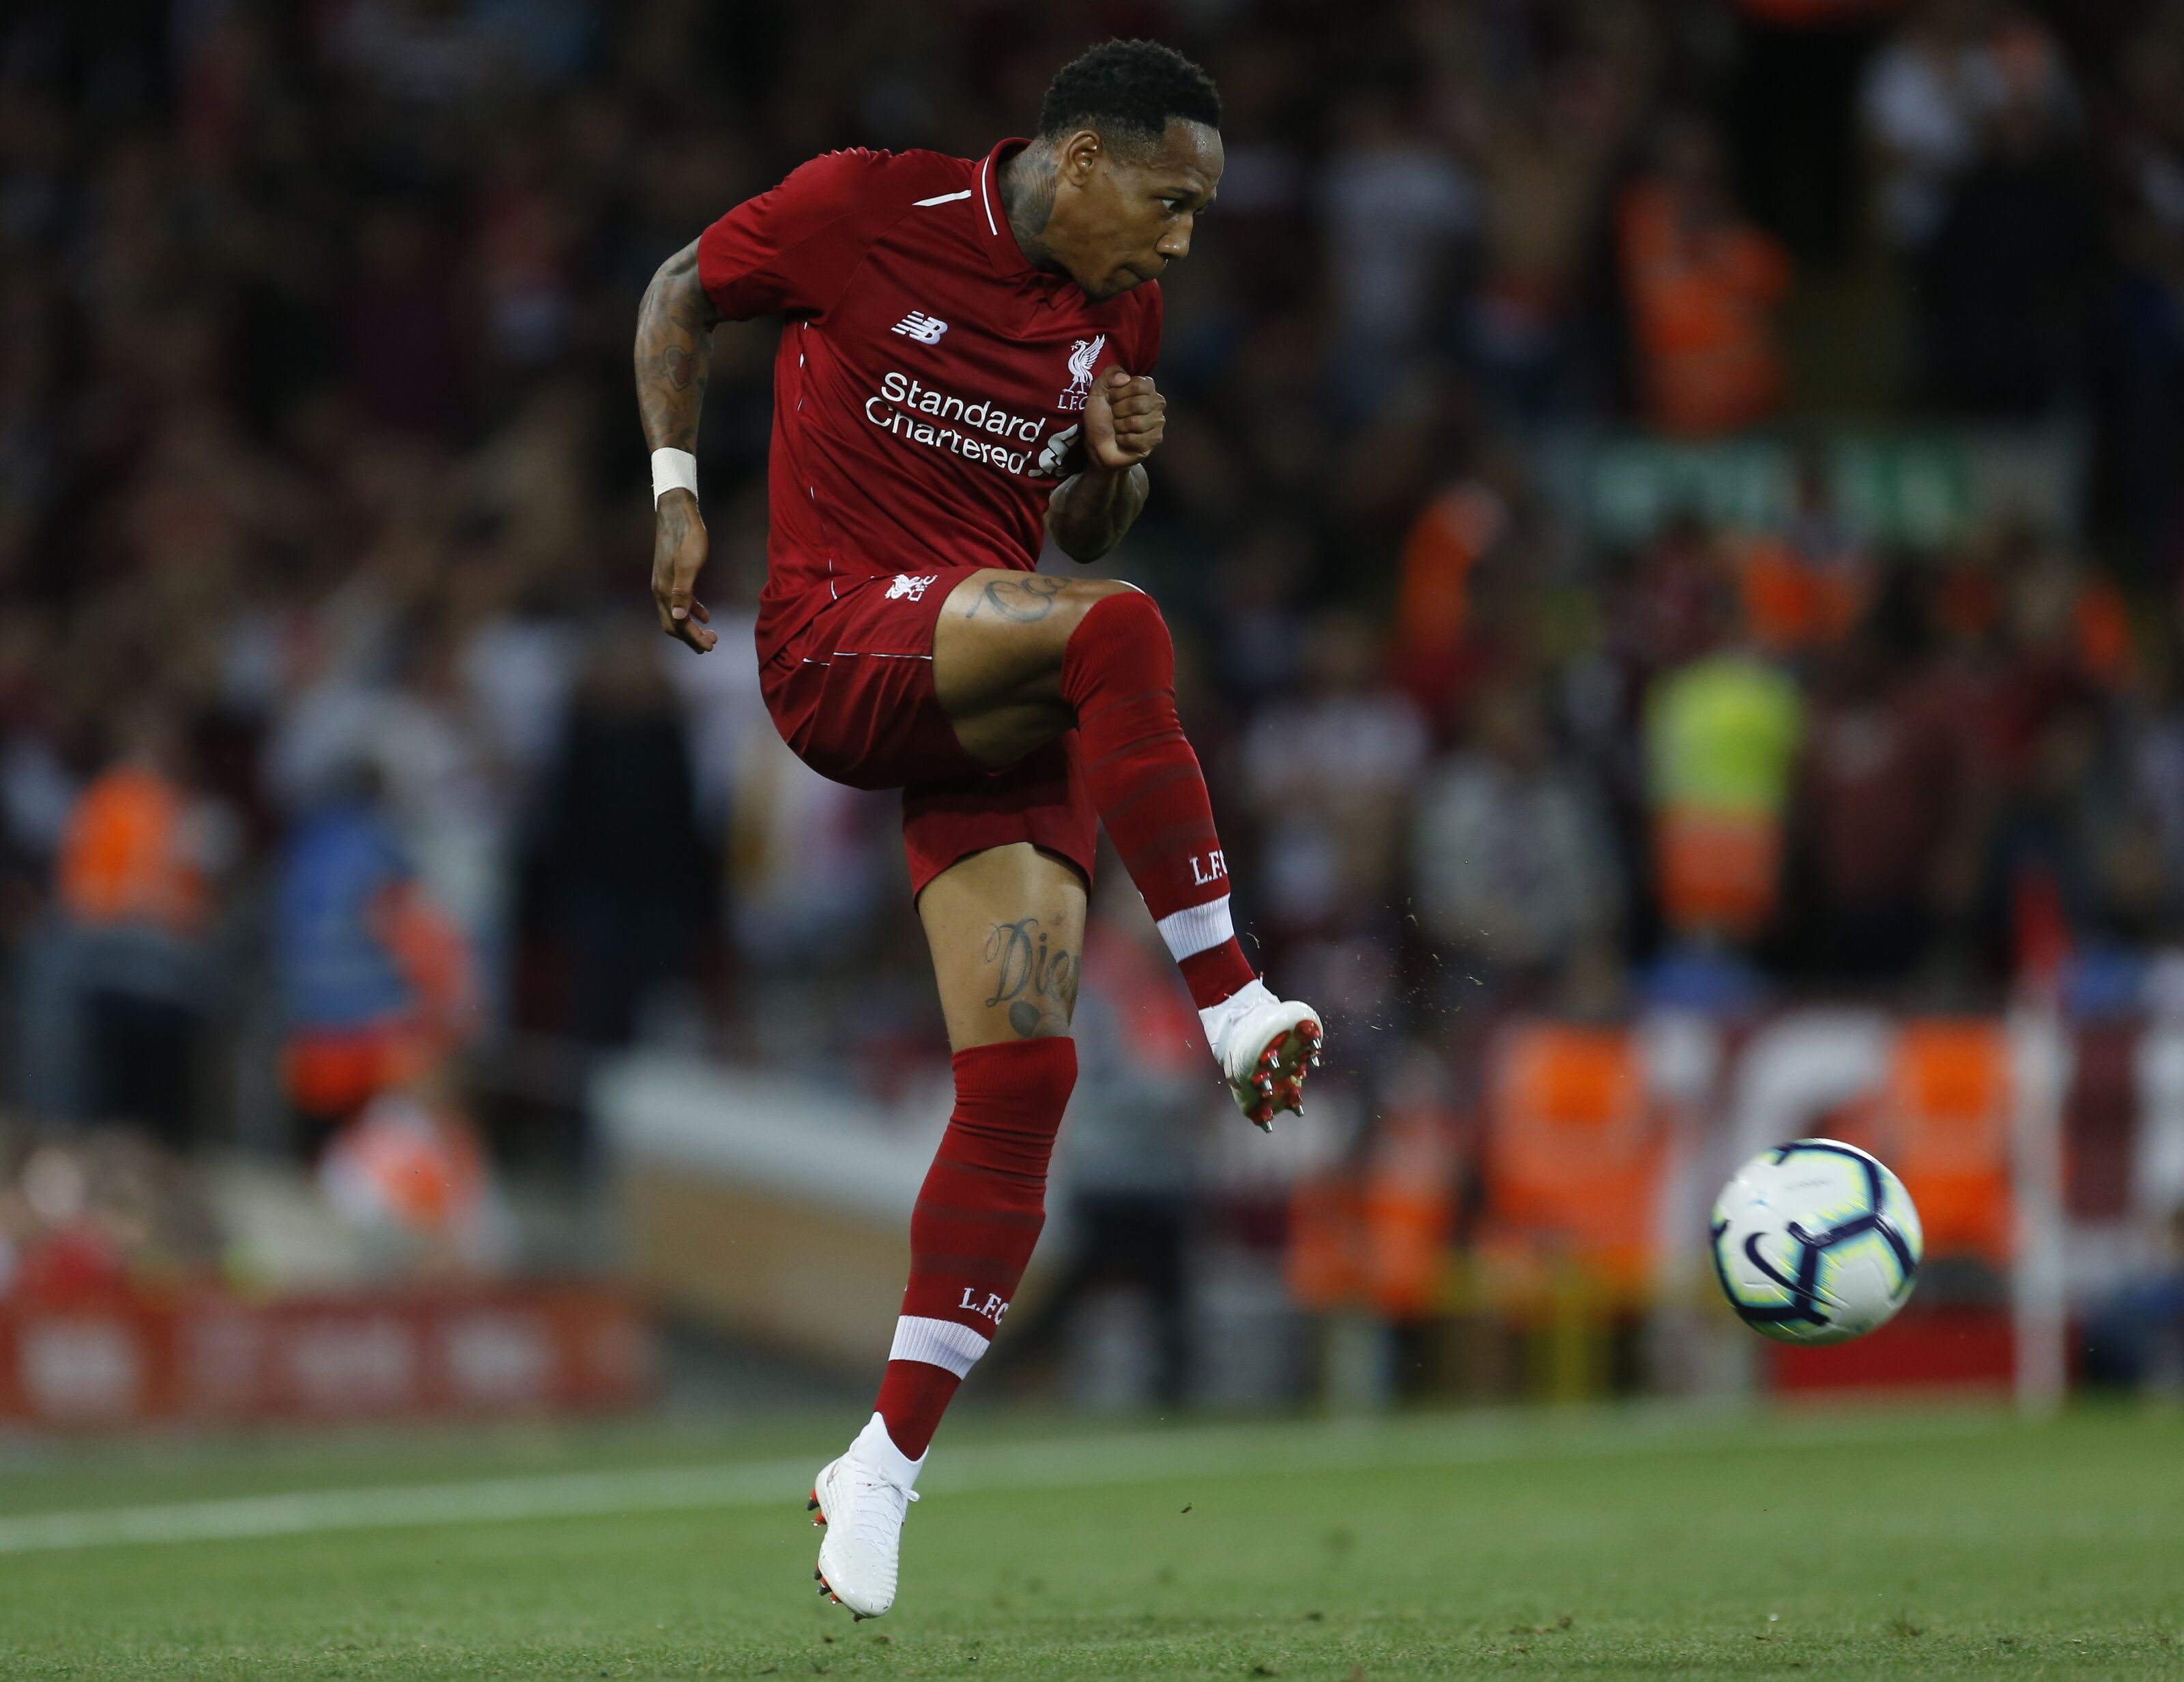 Liverpool set to get $19 million for Nathaniel Clyne?